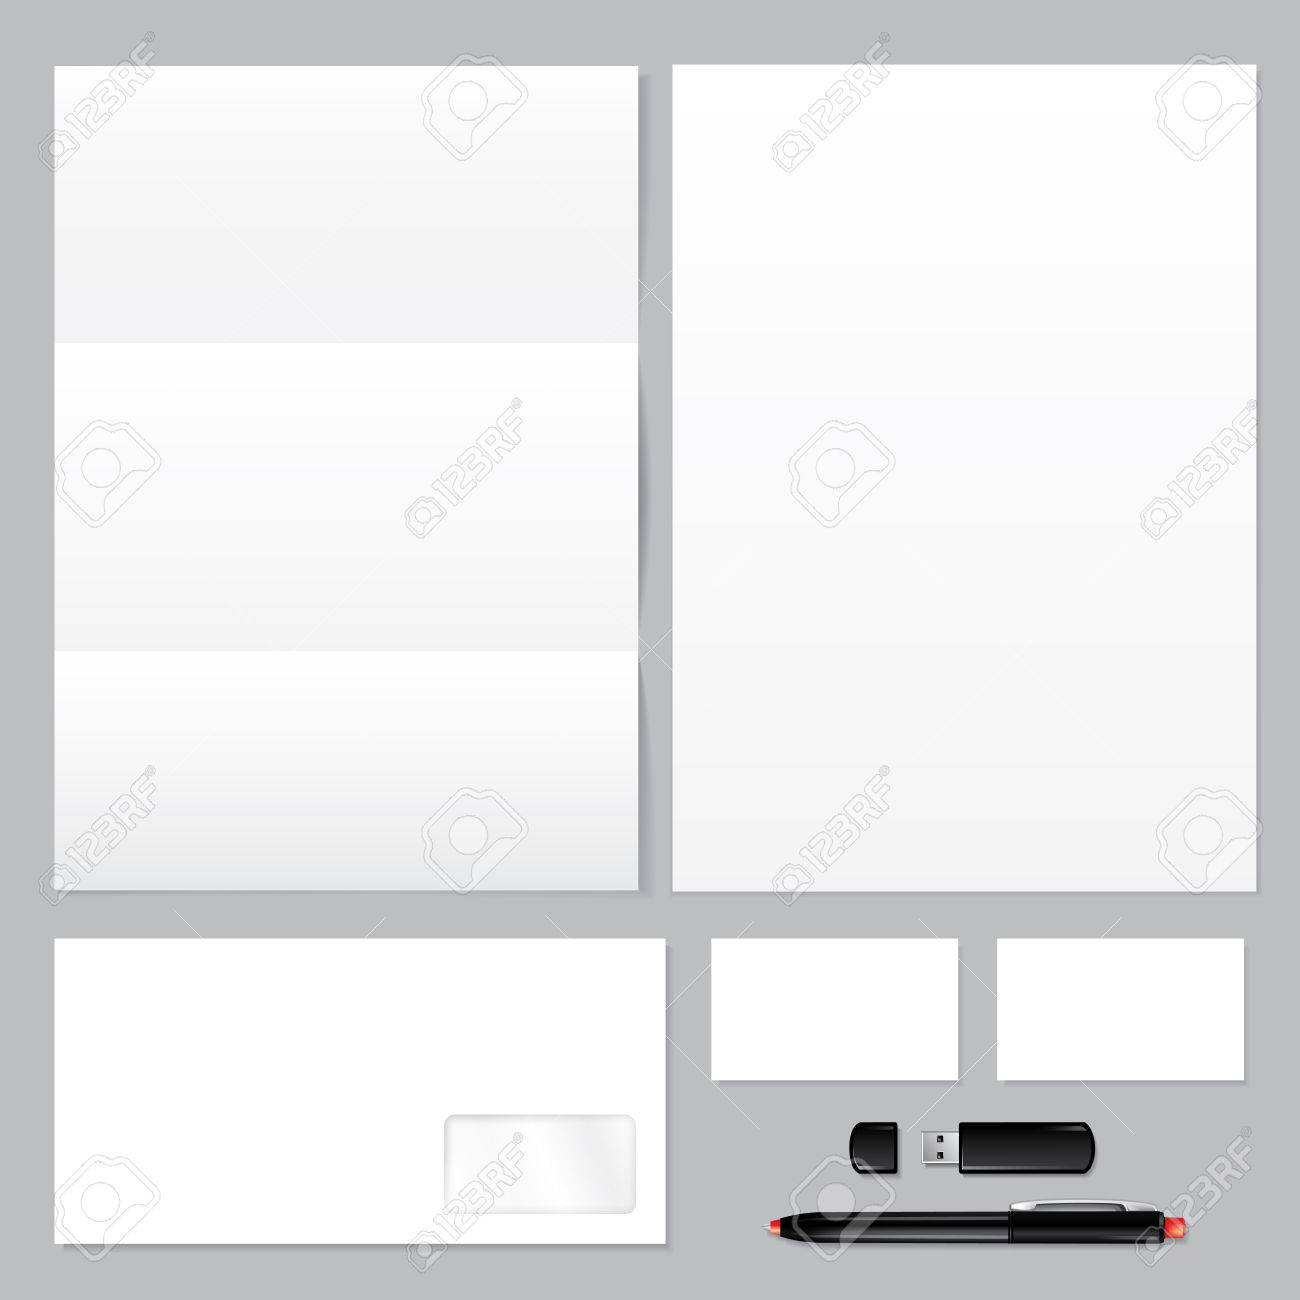 Set Of Corporate Identity Templates Blank, Envelope, Paper ...